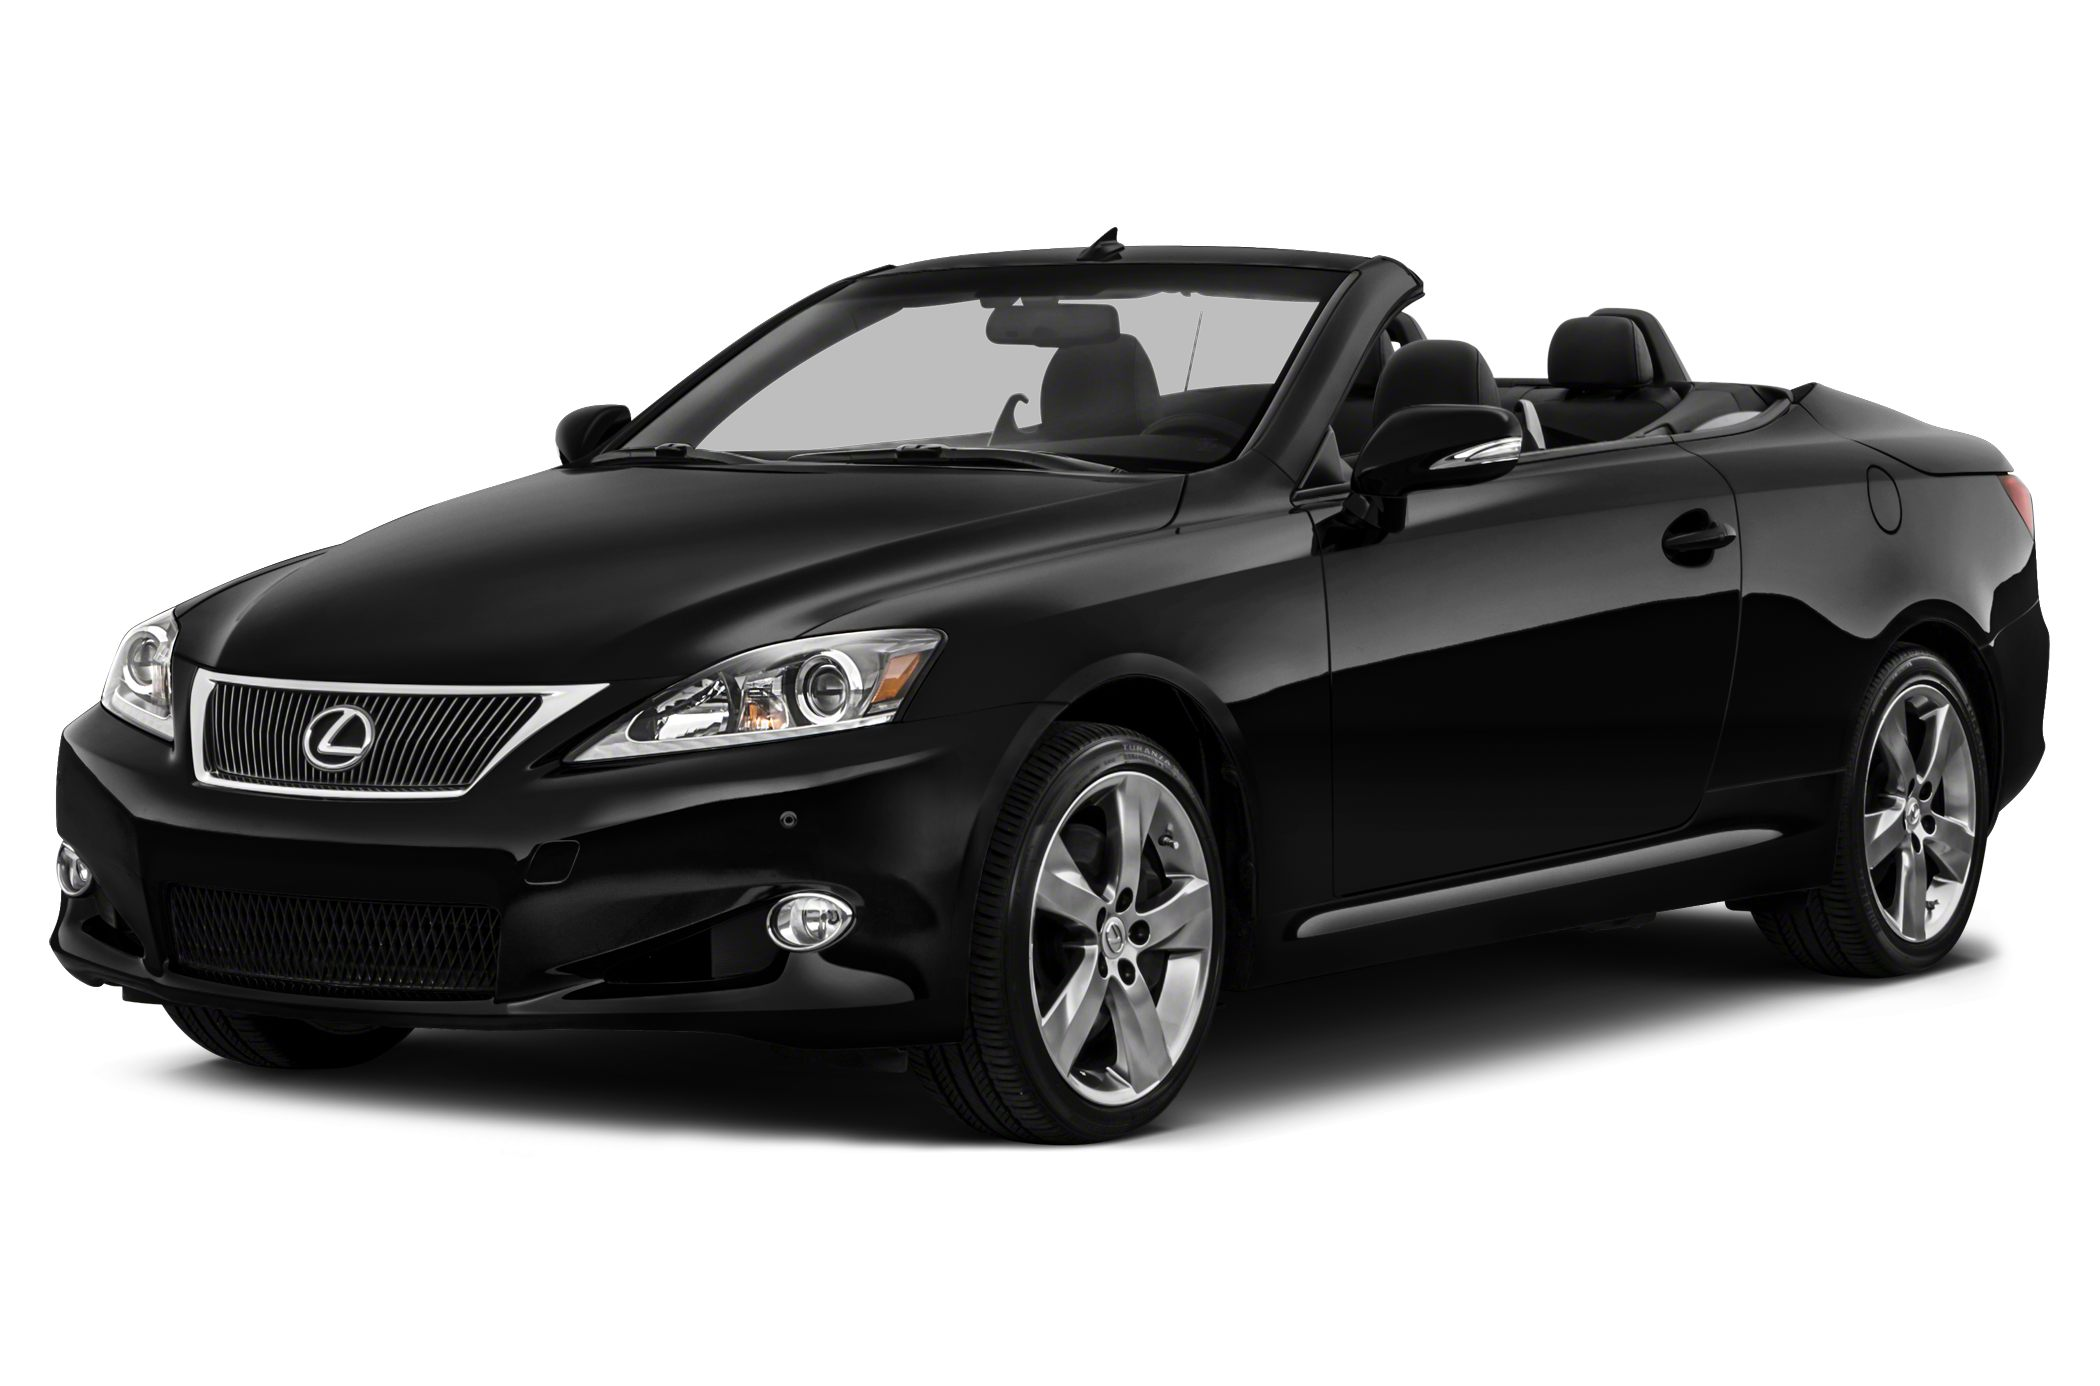 2014 Lexus IS 350C